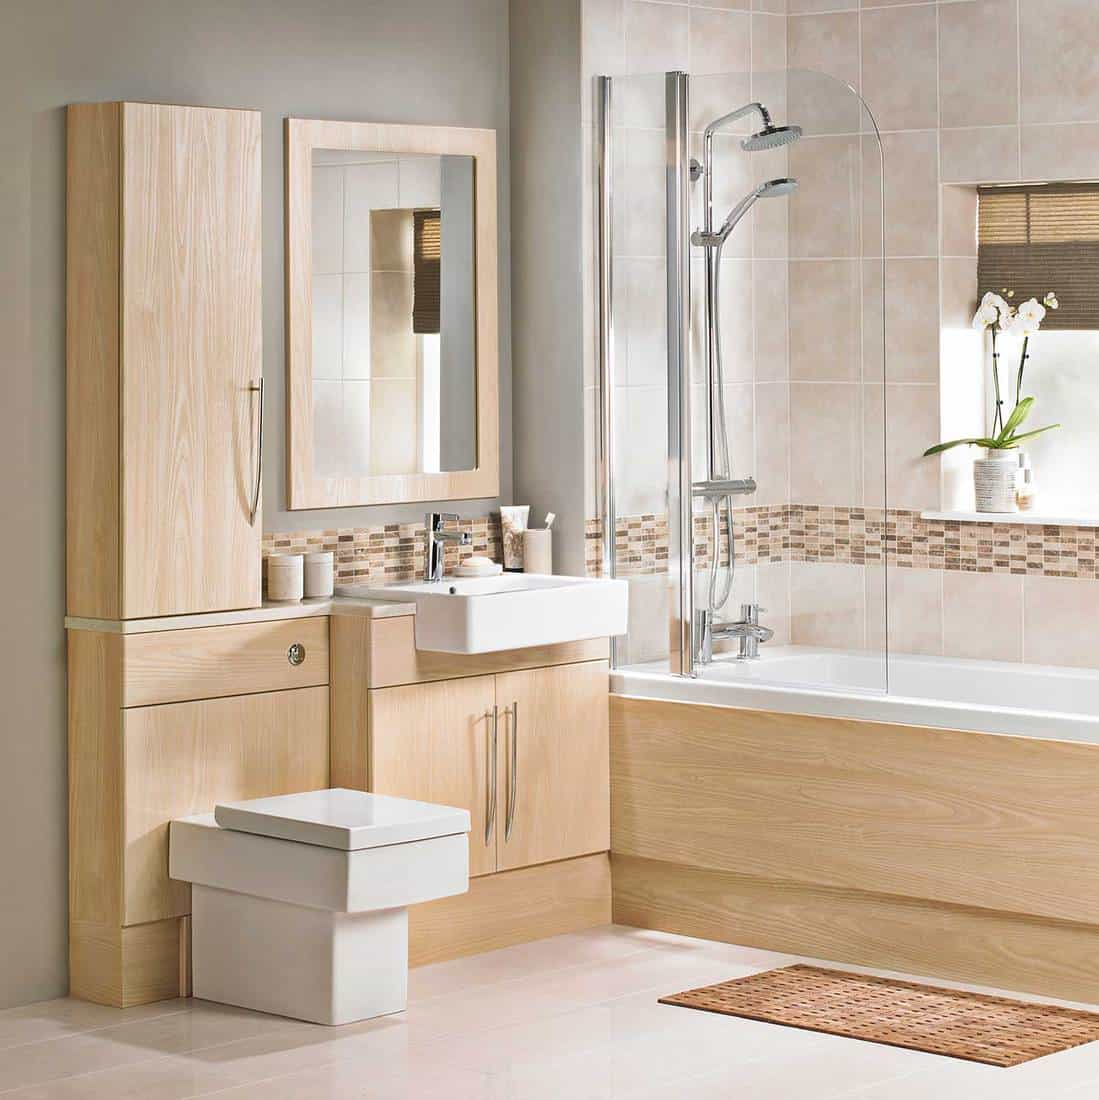 Interior of a luxurious bathroom in wooden tone